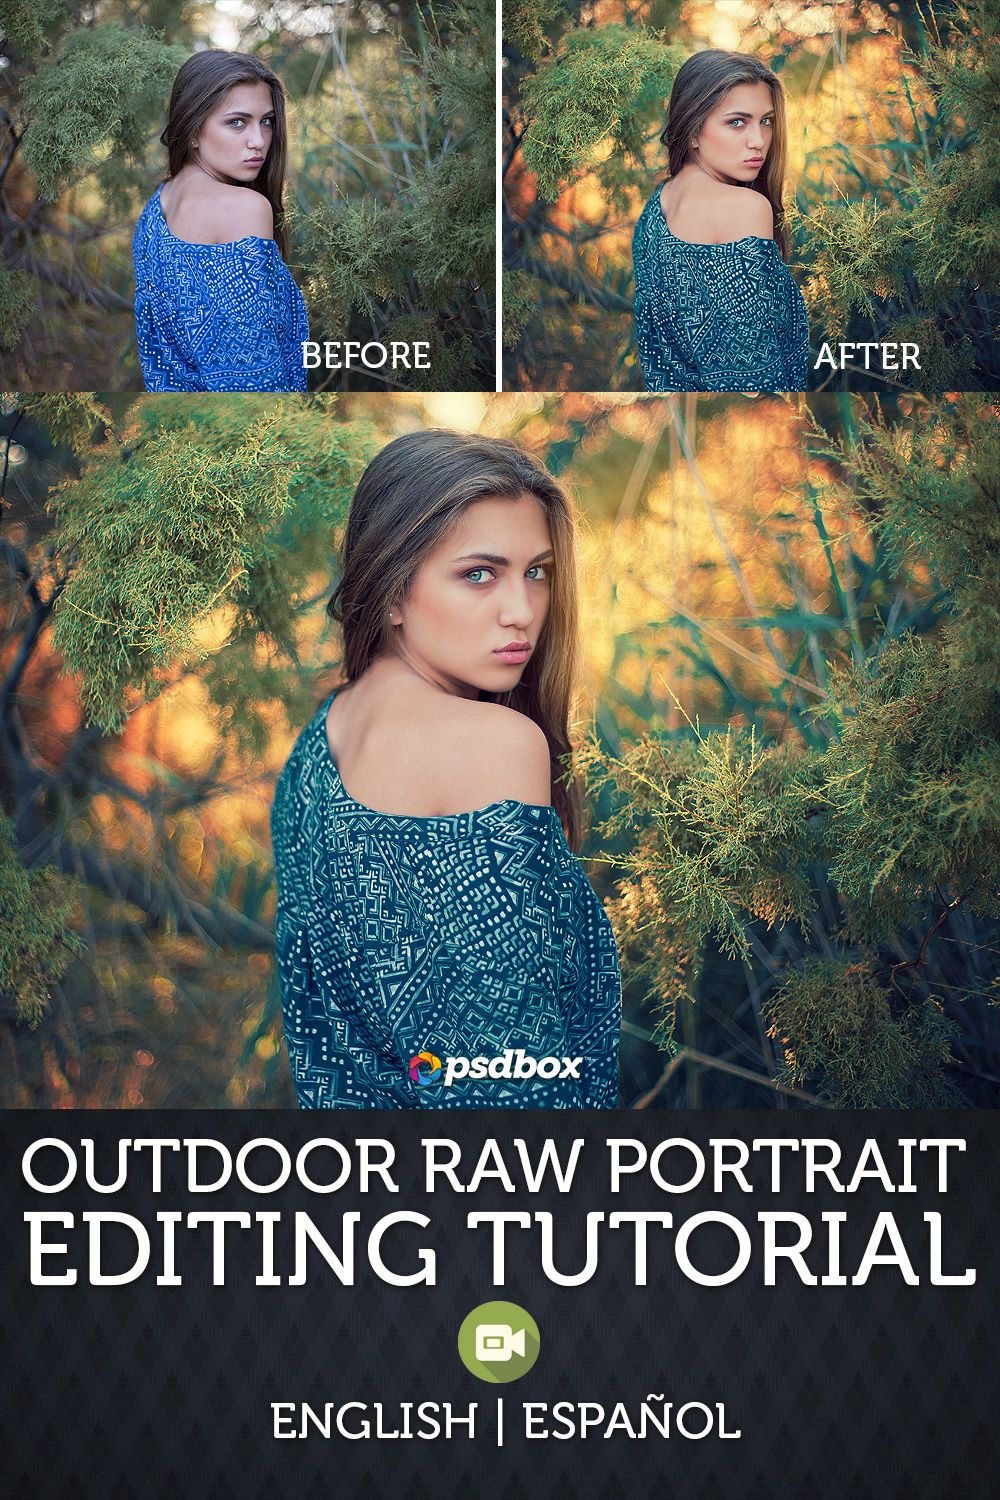 In This Editing Photoshop Tutorial I Will Show You How To Edit An Outdoor  Raw Portrait